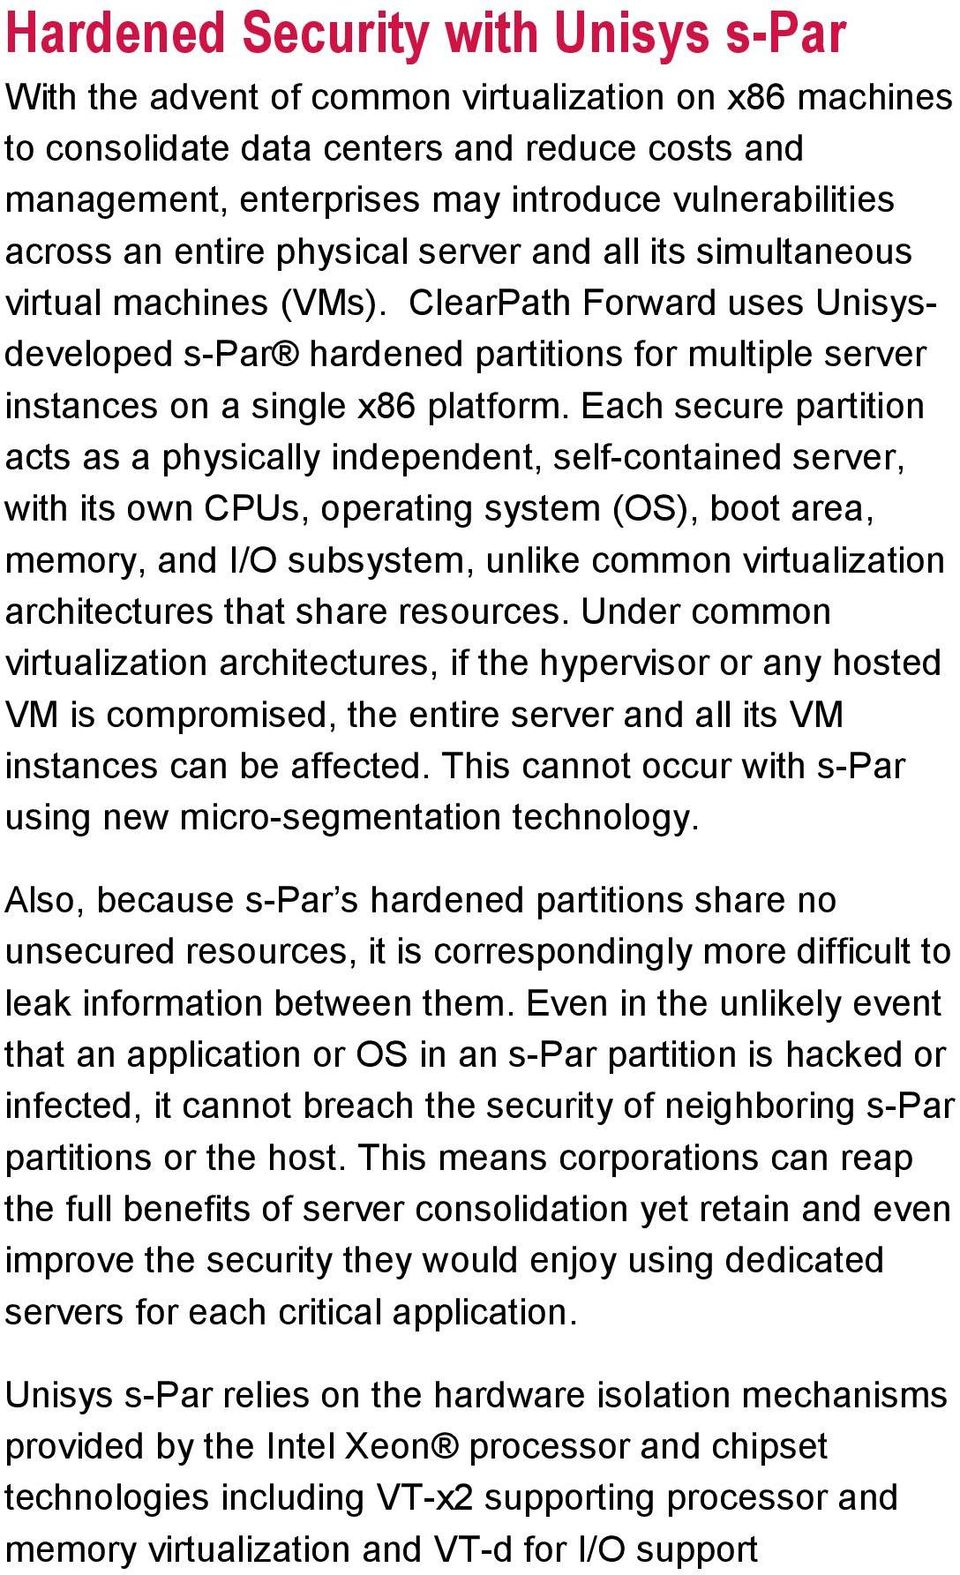 ClearPath Forward uses Unisysdeveloped s-par hardened partitions for multiple server instances on a single x86 platform.